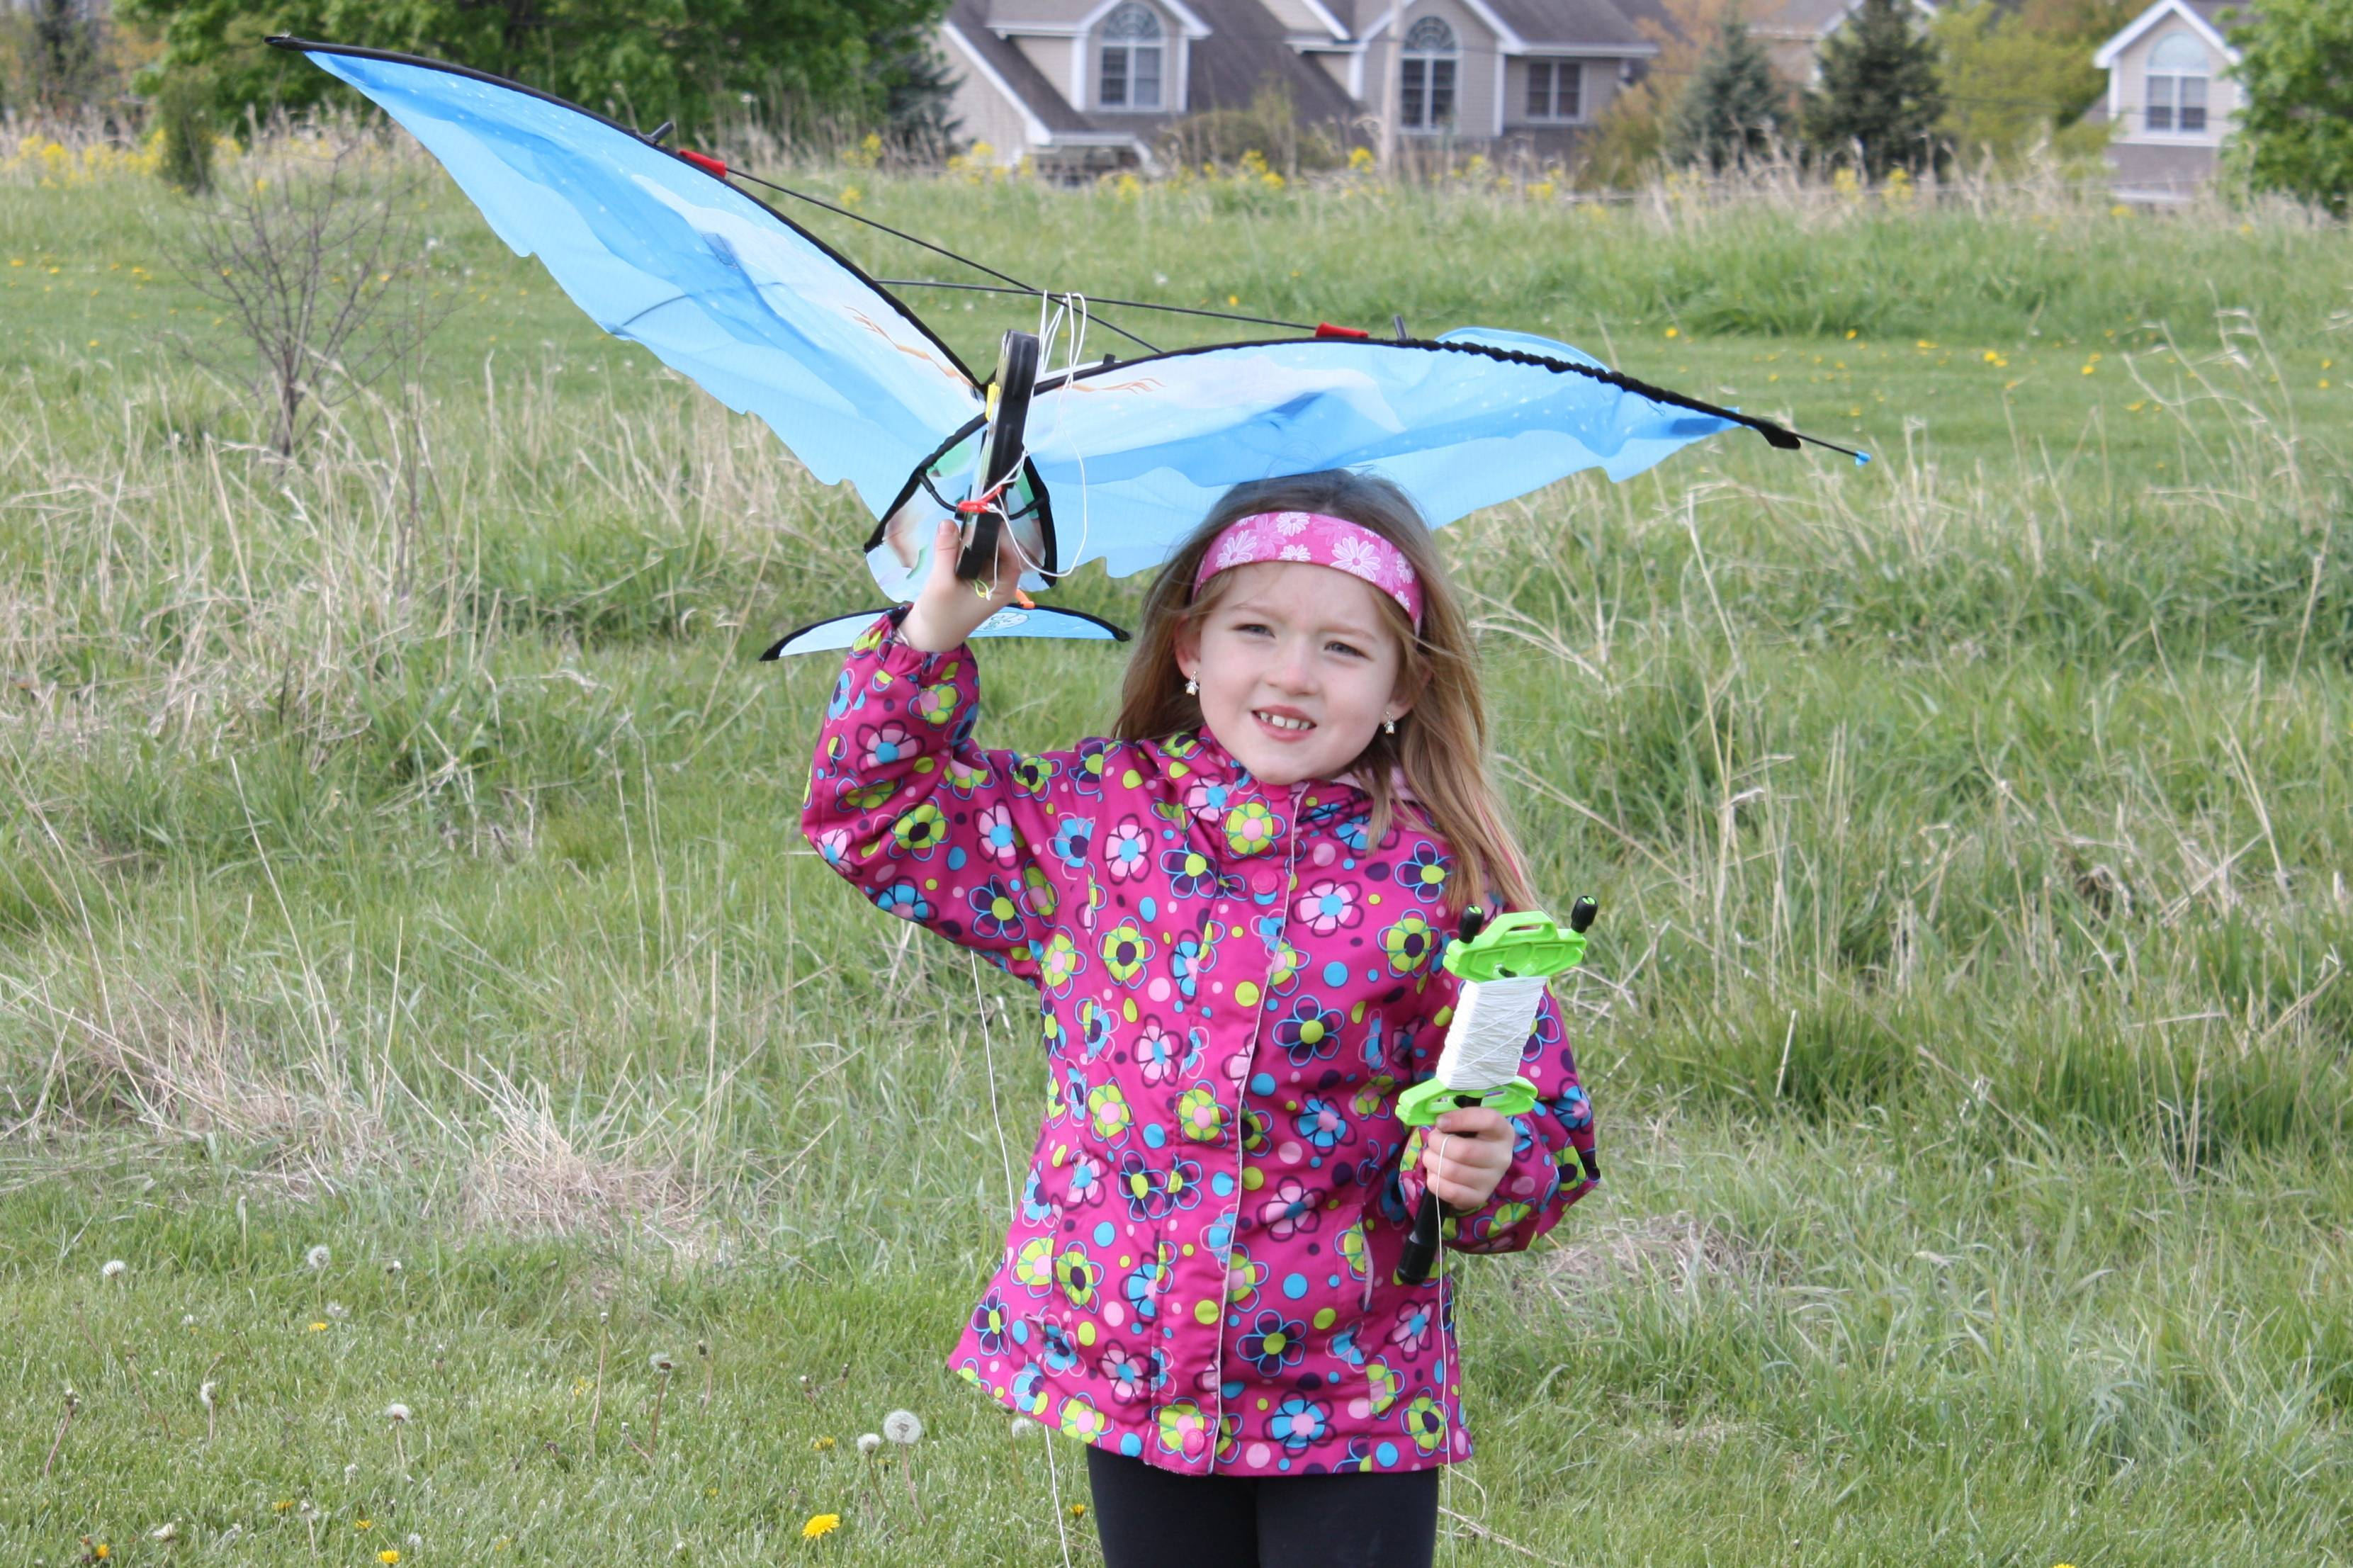 2012 Kite Fly at Riemer Reservoir in Palatine.